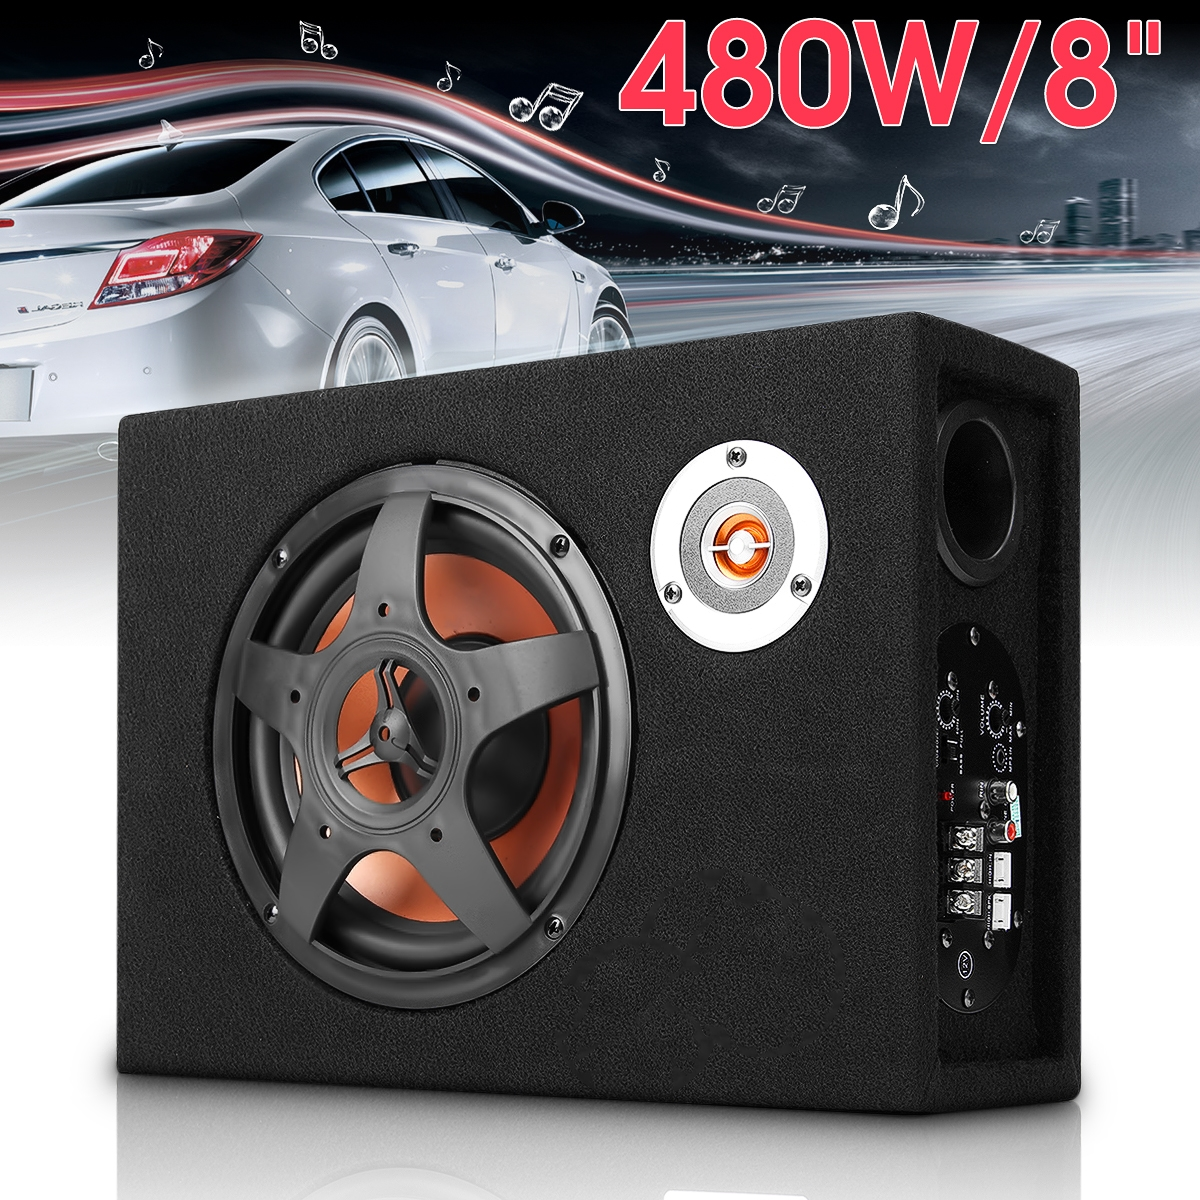 8 inch bluetooth car home subwoofer under seat sub 600w stereo subwoofer car audio speaker music system sound woofer Mini 8 Inch Car Ultra Thin Under-Seat Subwoofer Speaker 480W Vehicle Car Subwoofer Modified Speaker Stereo Audio Bass Amplifier